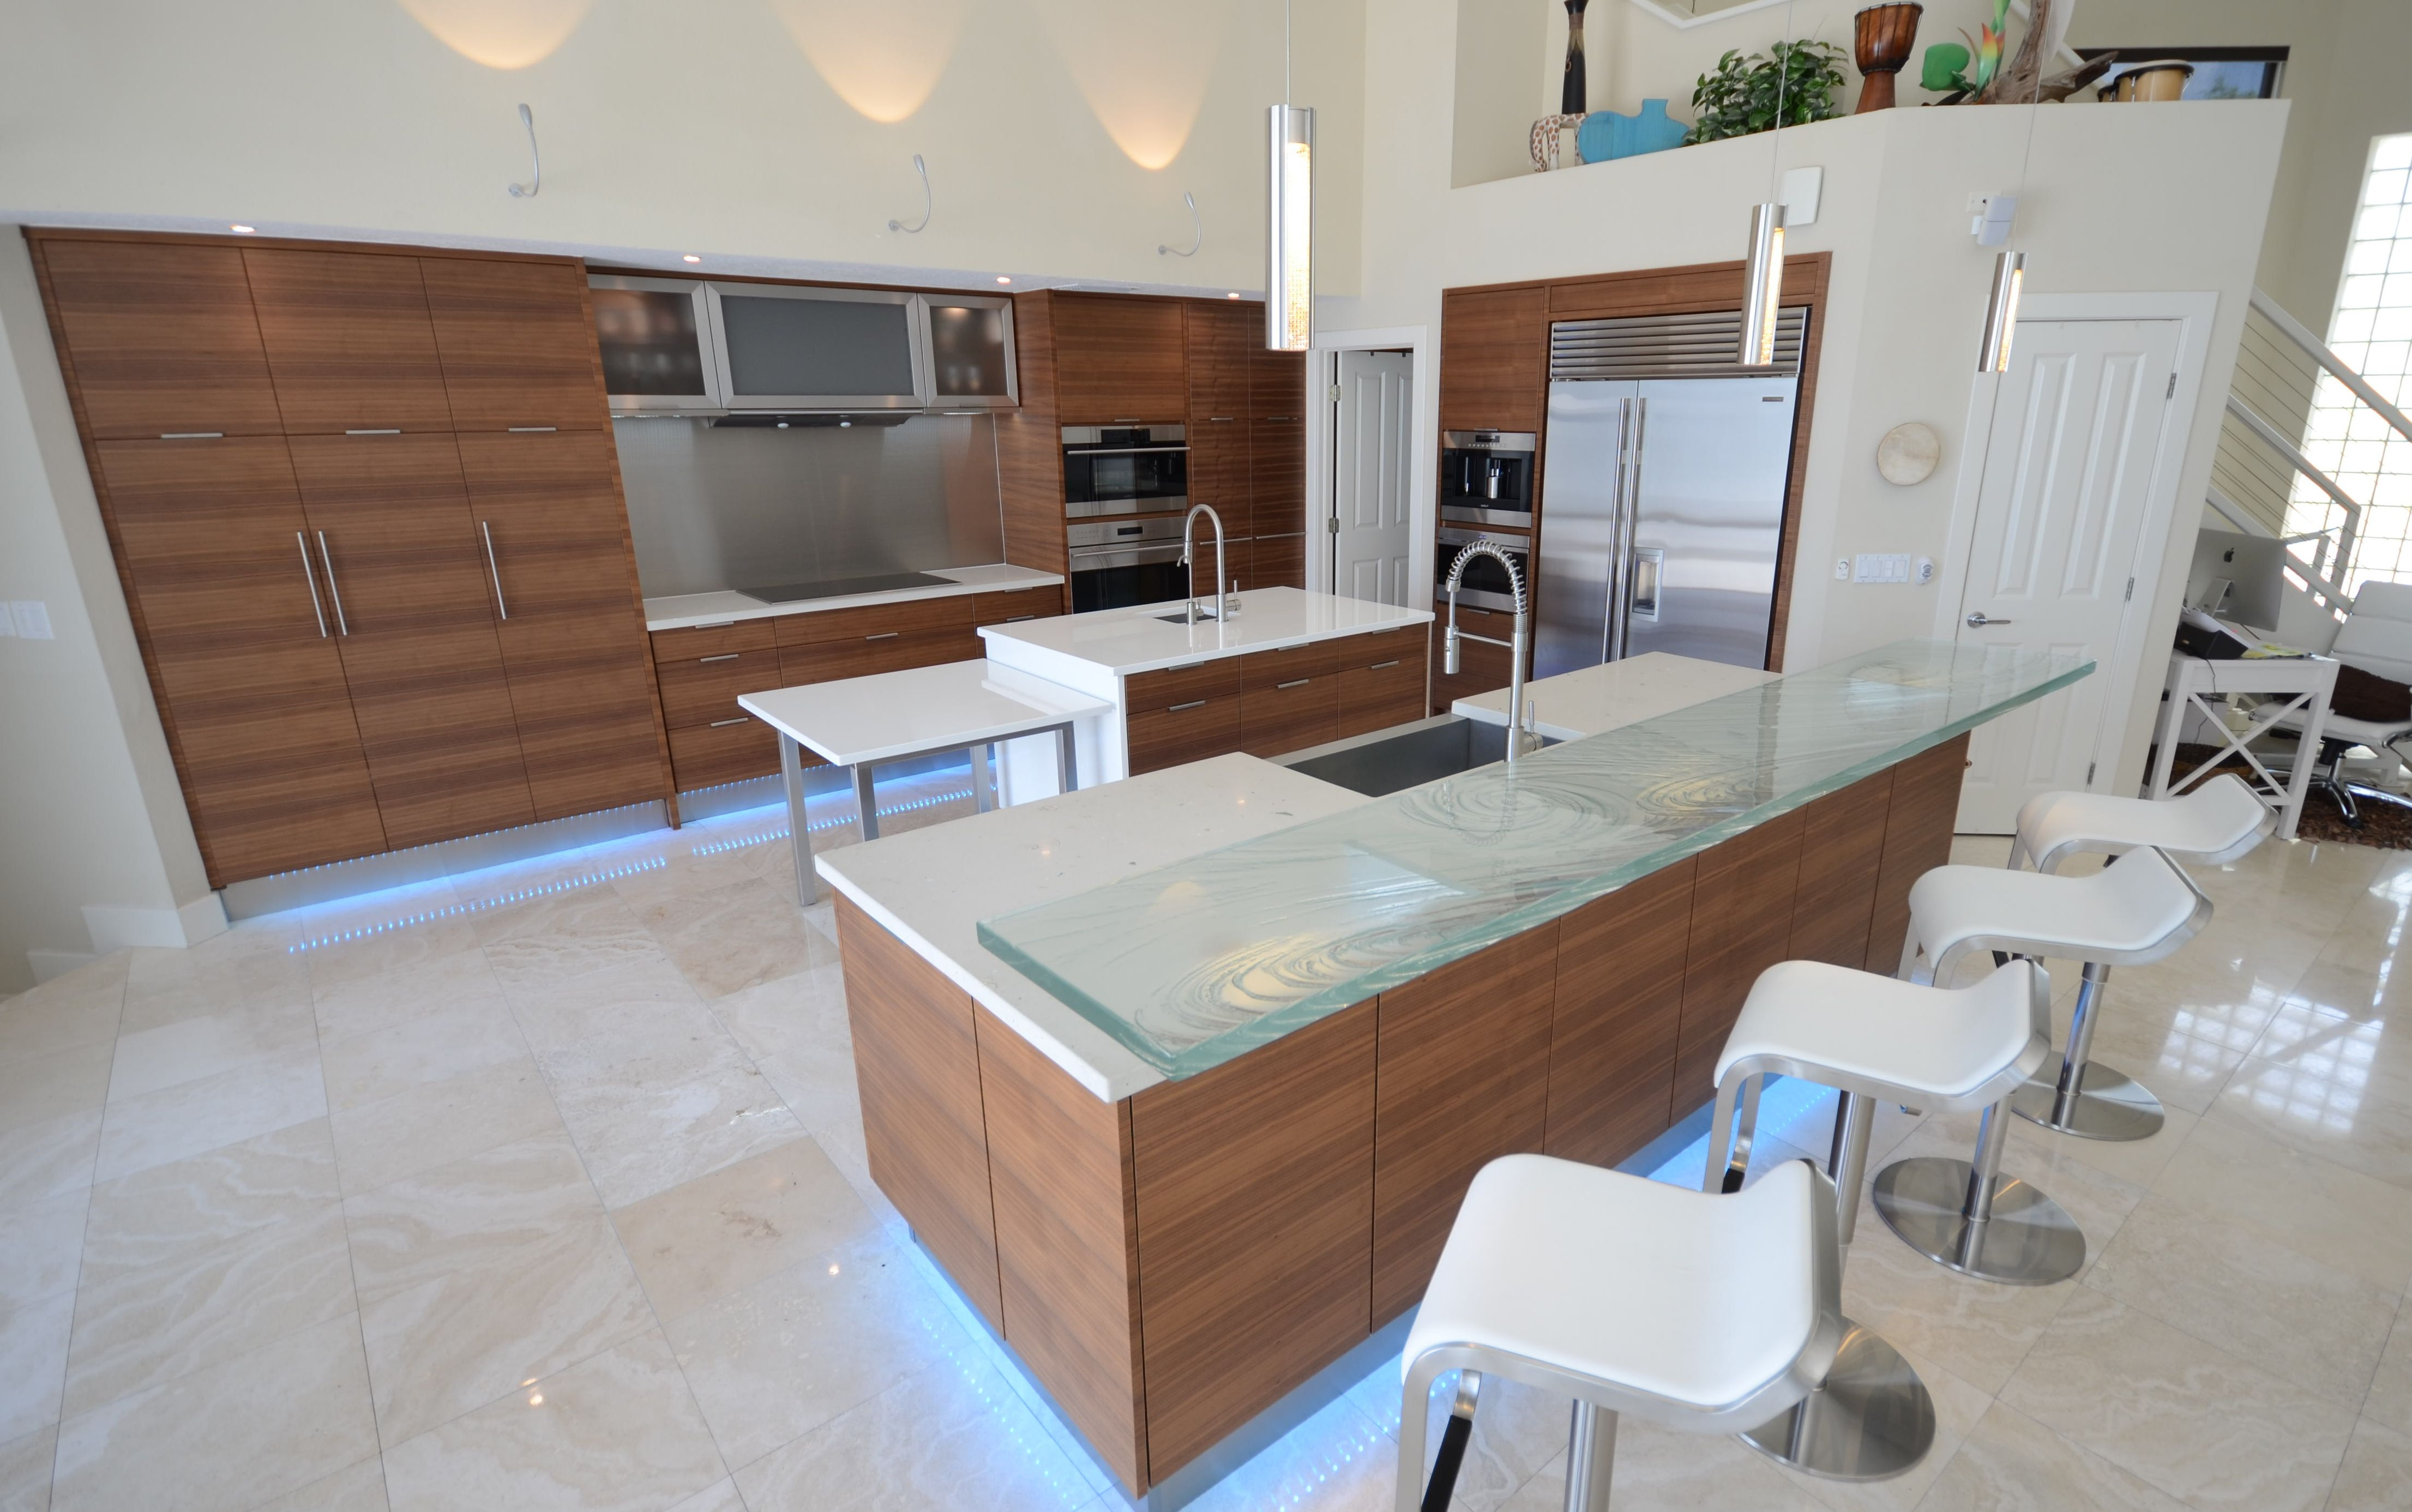 Buyers Guide To Custom Glass Countertops, White Glass Countertops And  Concrete Countertops Info Blog.